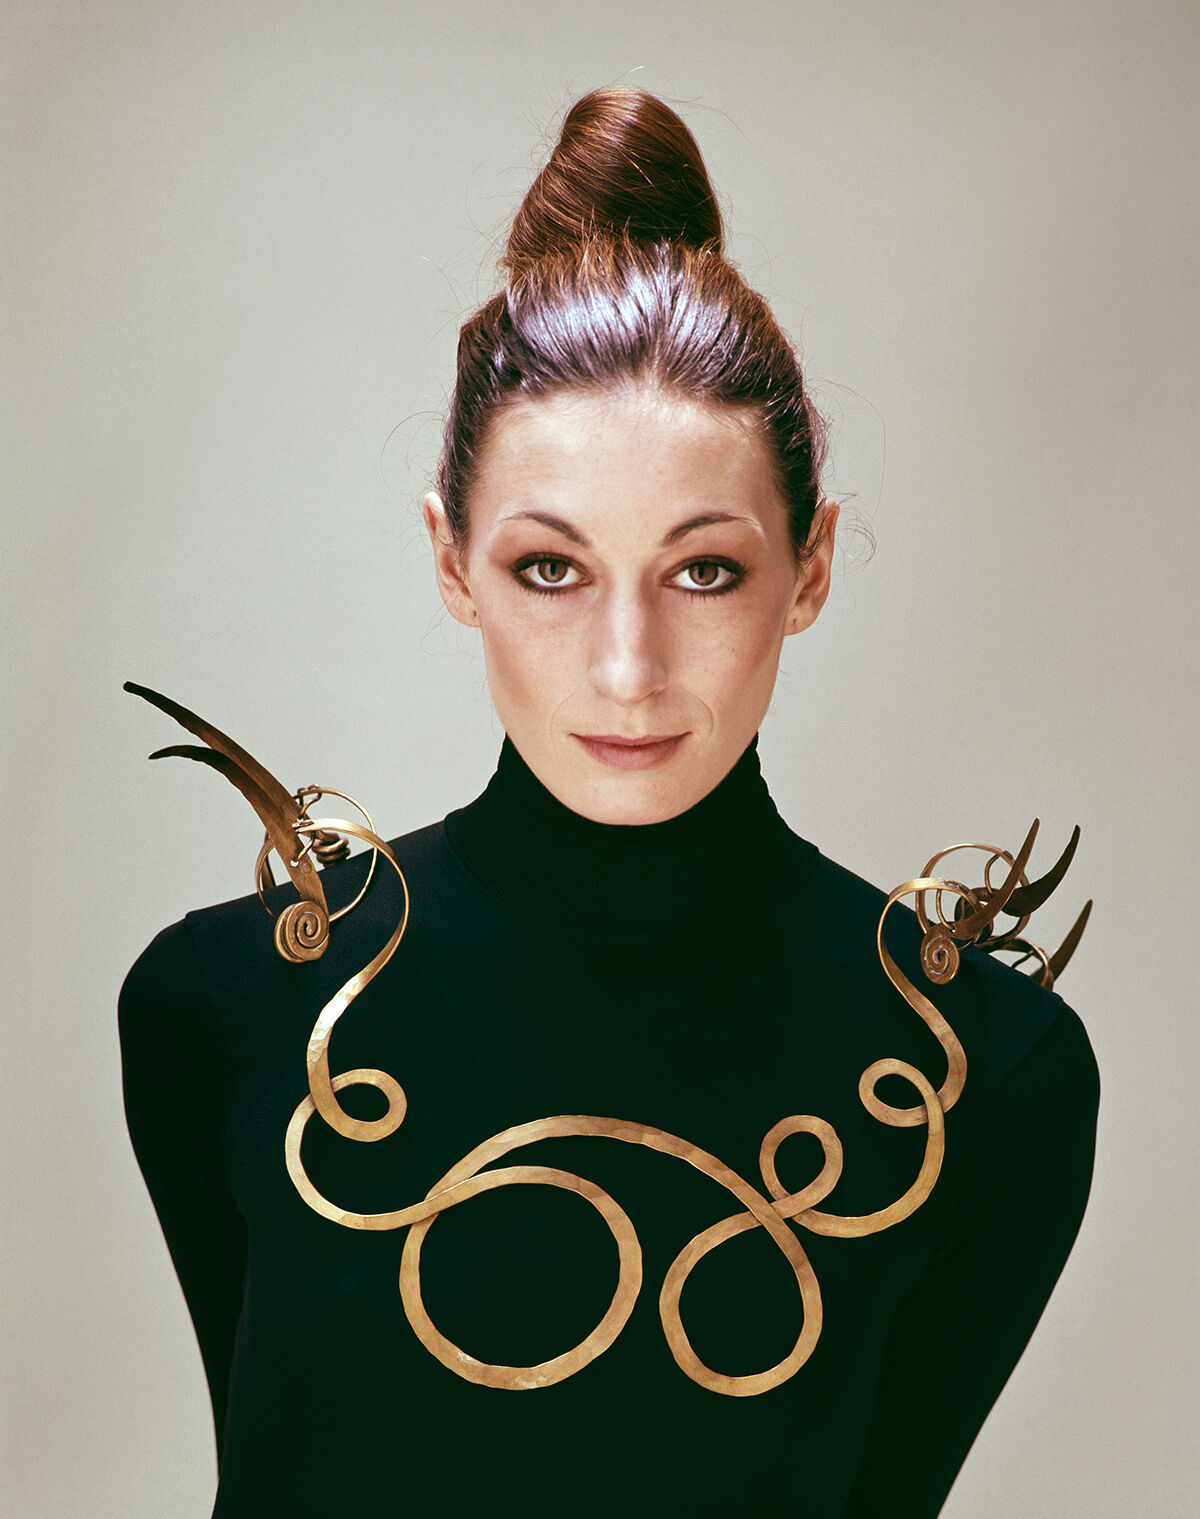 "Evelyn Hofer, Anjelica Huston wearing Calder's ""Jealous Husband"" (c. 1940), N.Y., 1976. Image courtesy of the Estate of Evelyn Hofer. Artwork ©2017 Calder Foundation, New York / Artists Rights Society (ARS), New York."